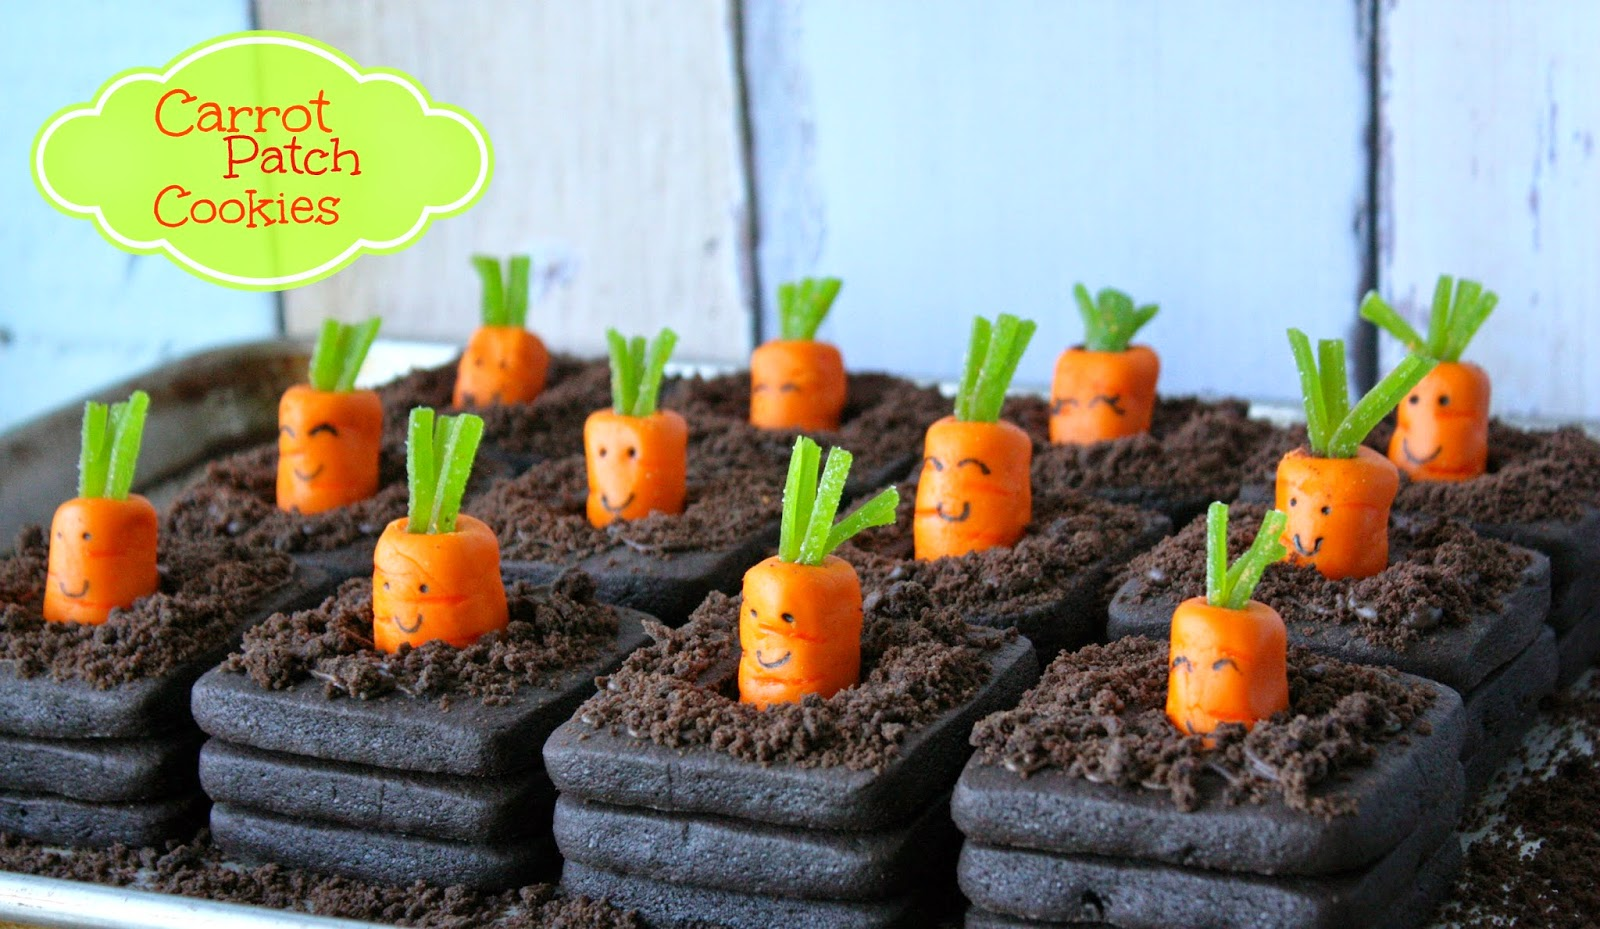 Munchkin Munchies: 3-D Carrot Patch Cookies